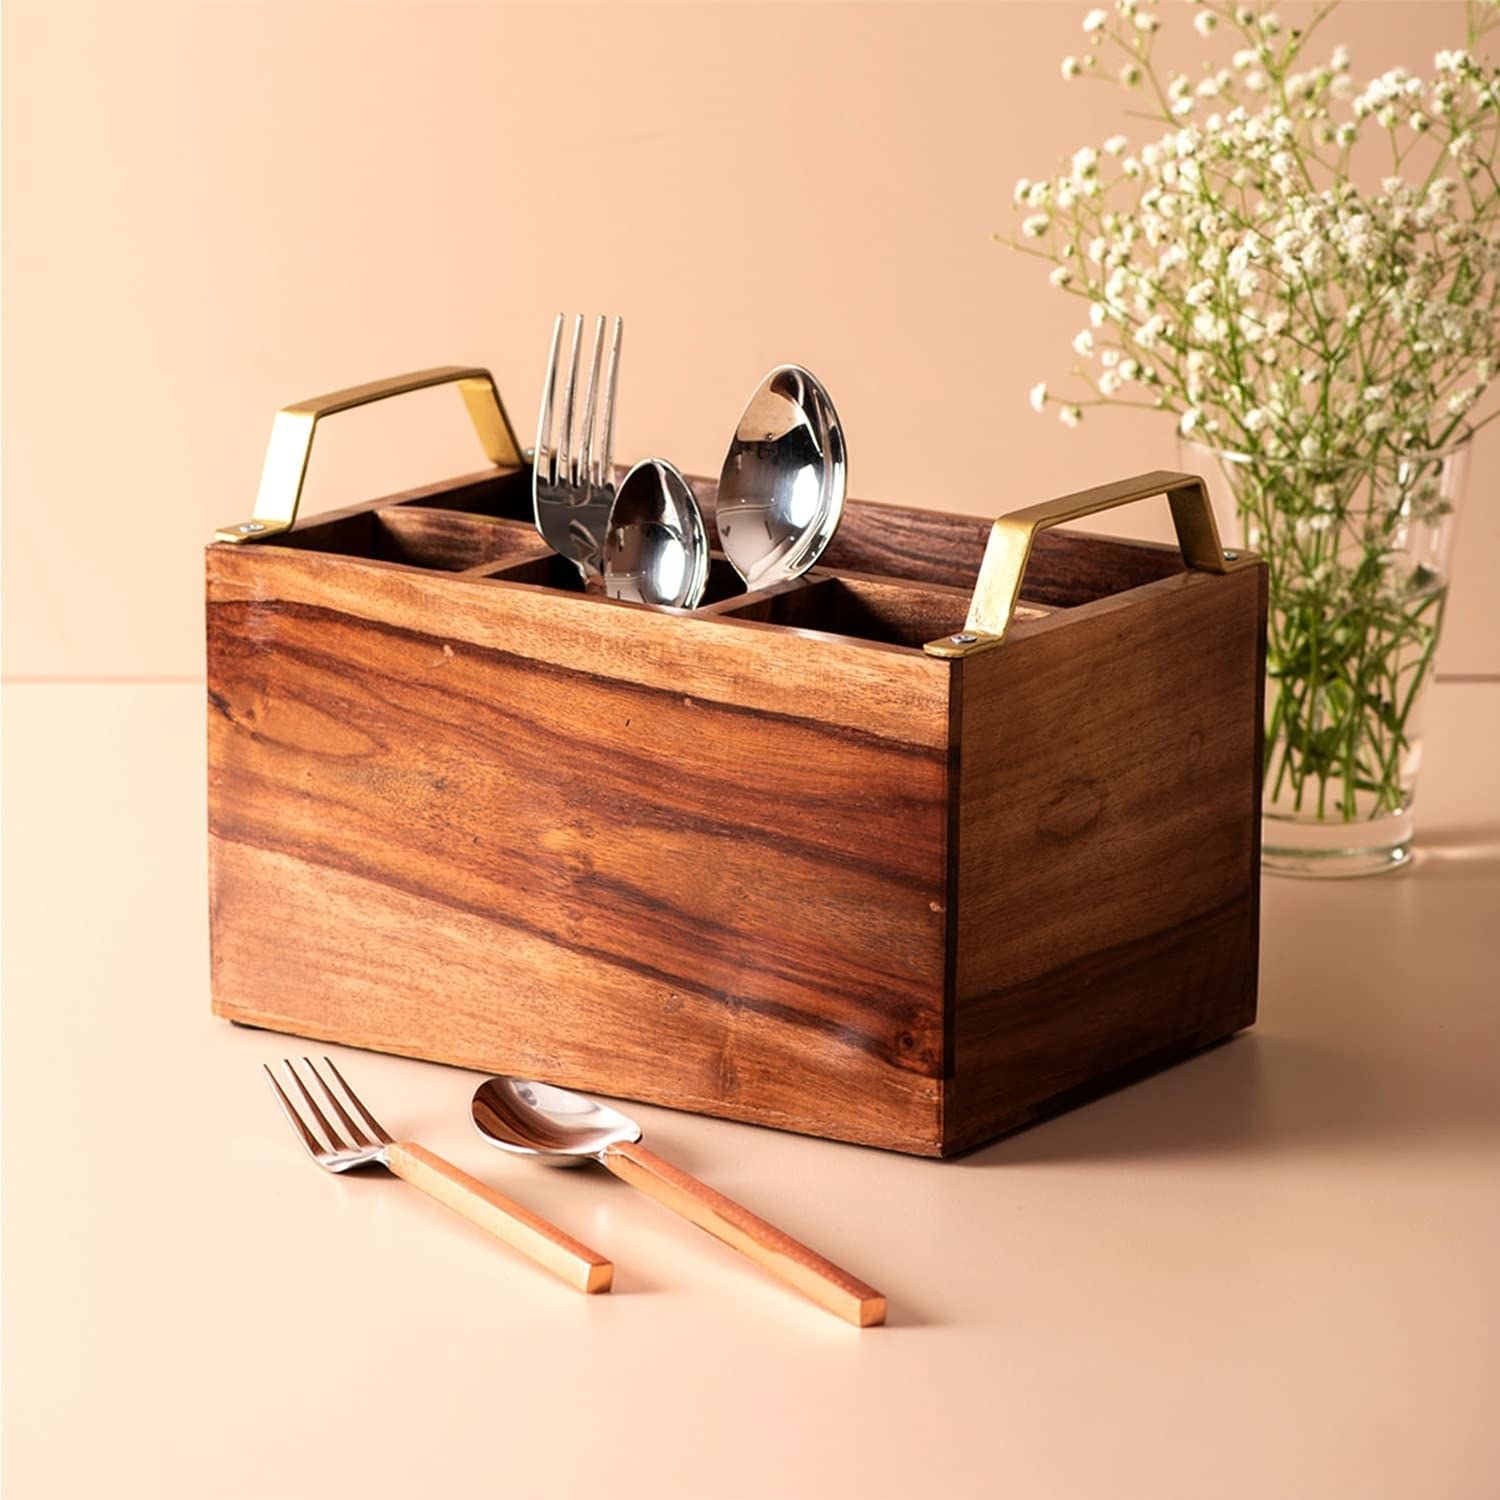 A wooden 4 compartment cutlery stand with some spoons in the holder, a fork and spoon in the foreground and baby's breath flowers in a vase